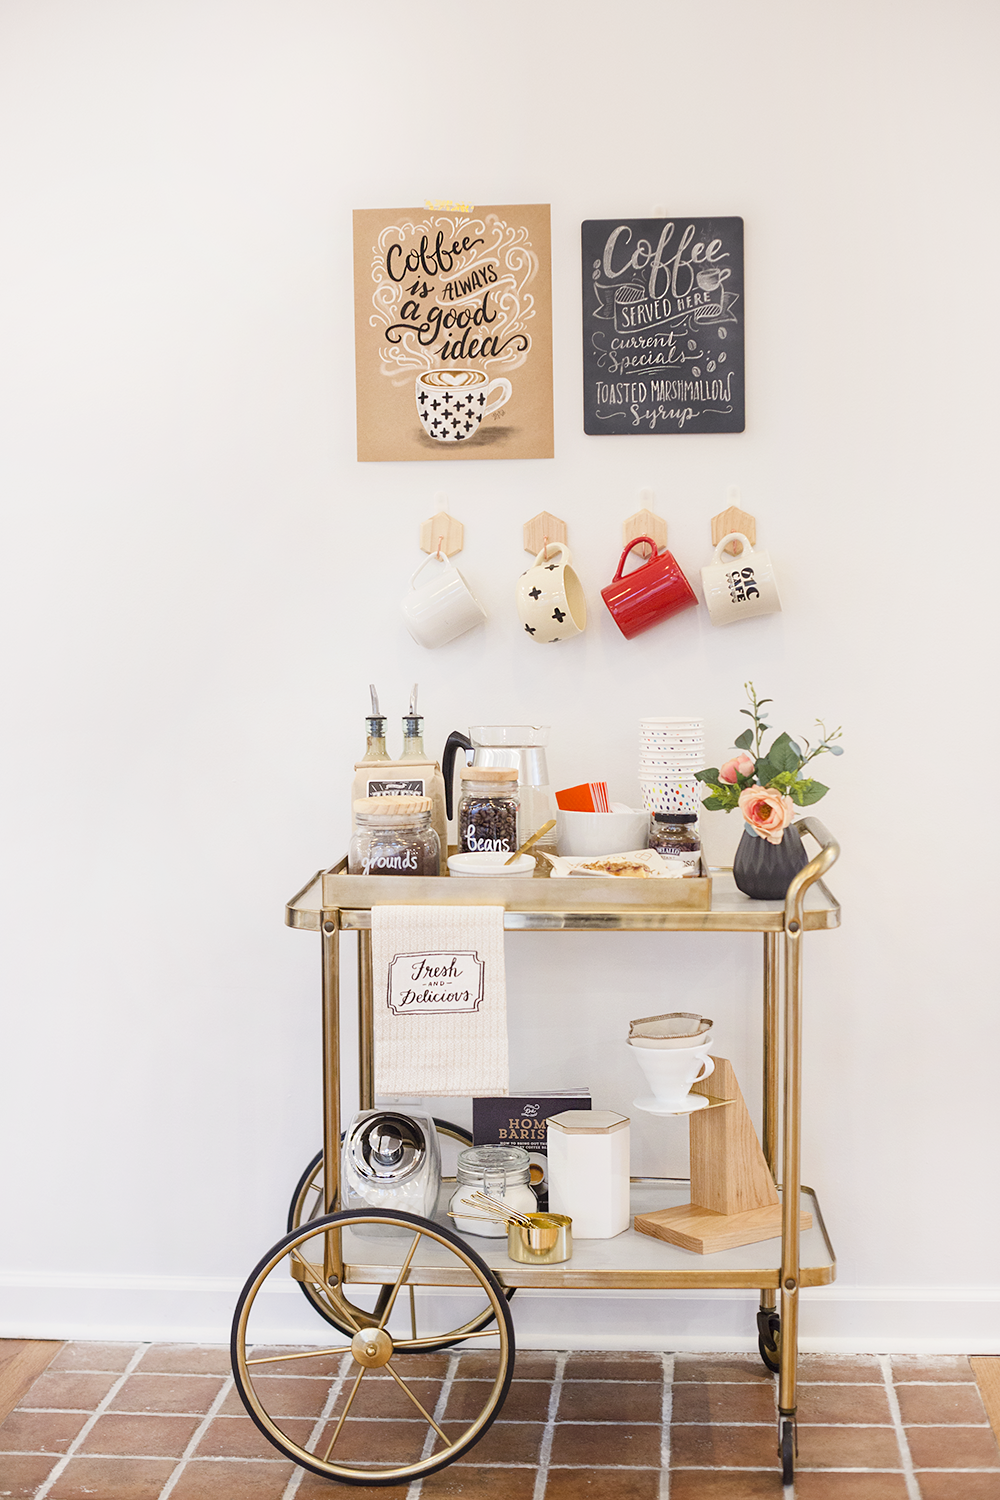 How to make a coffee bar | DIY coffee bar | DIY coffee cart